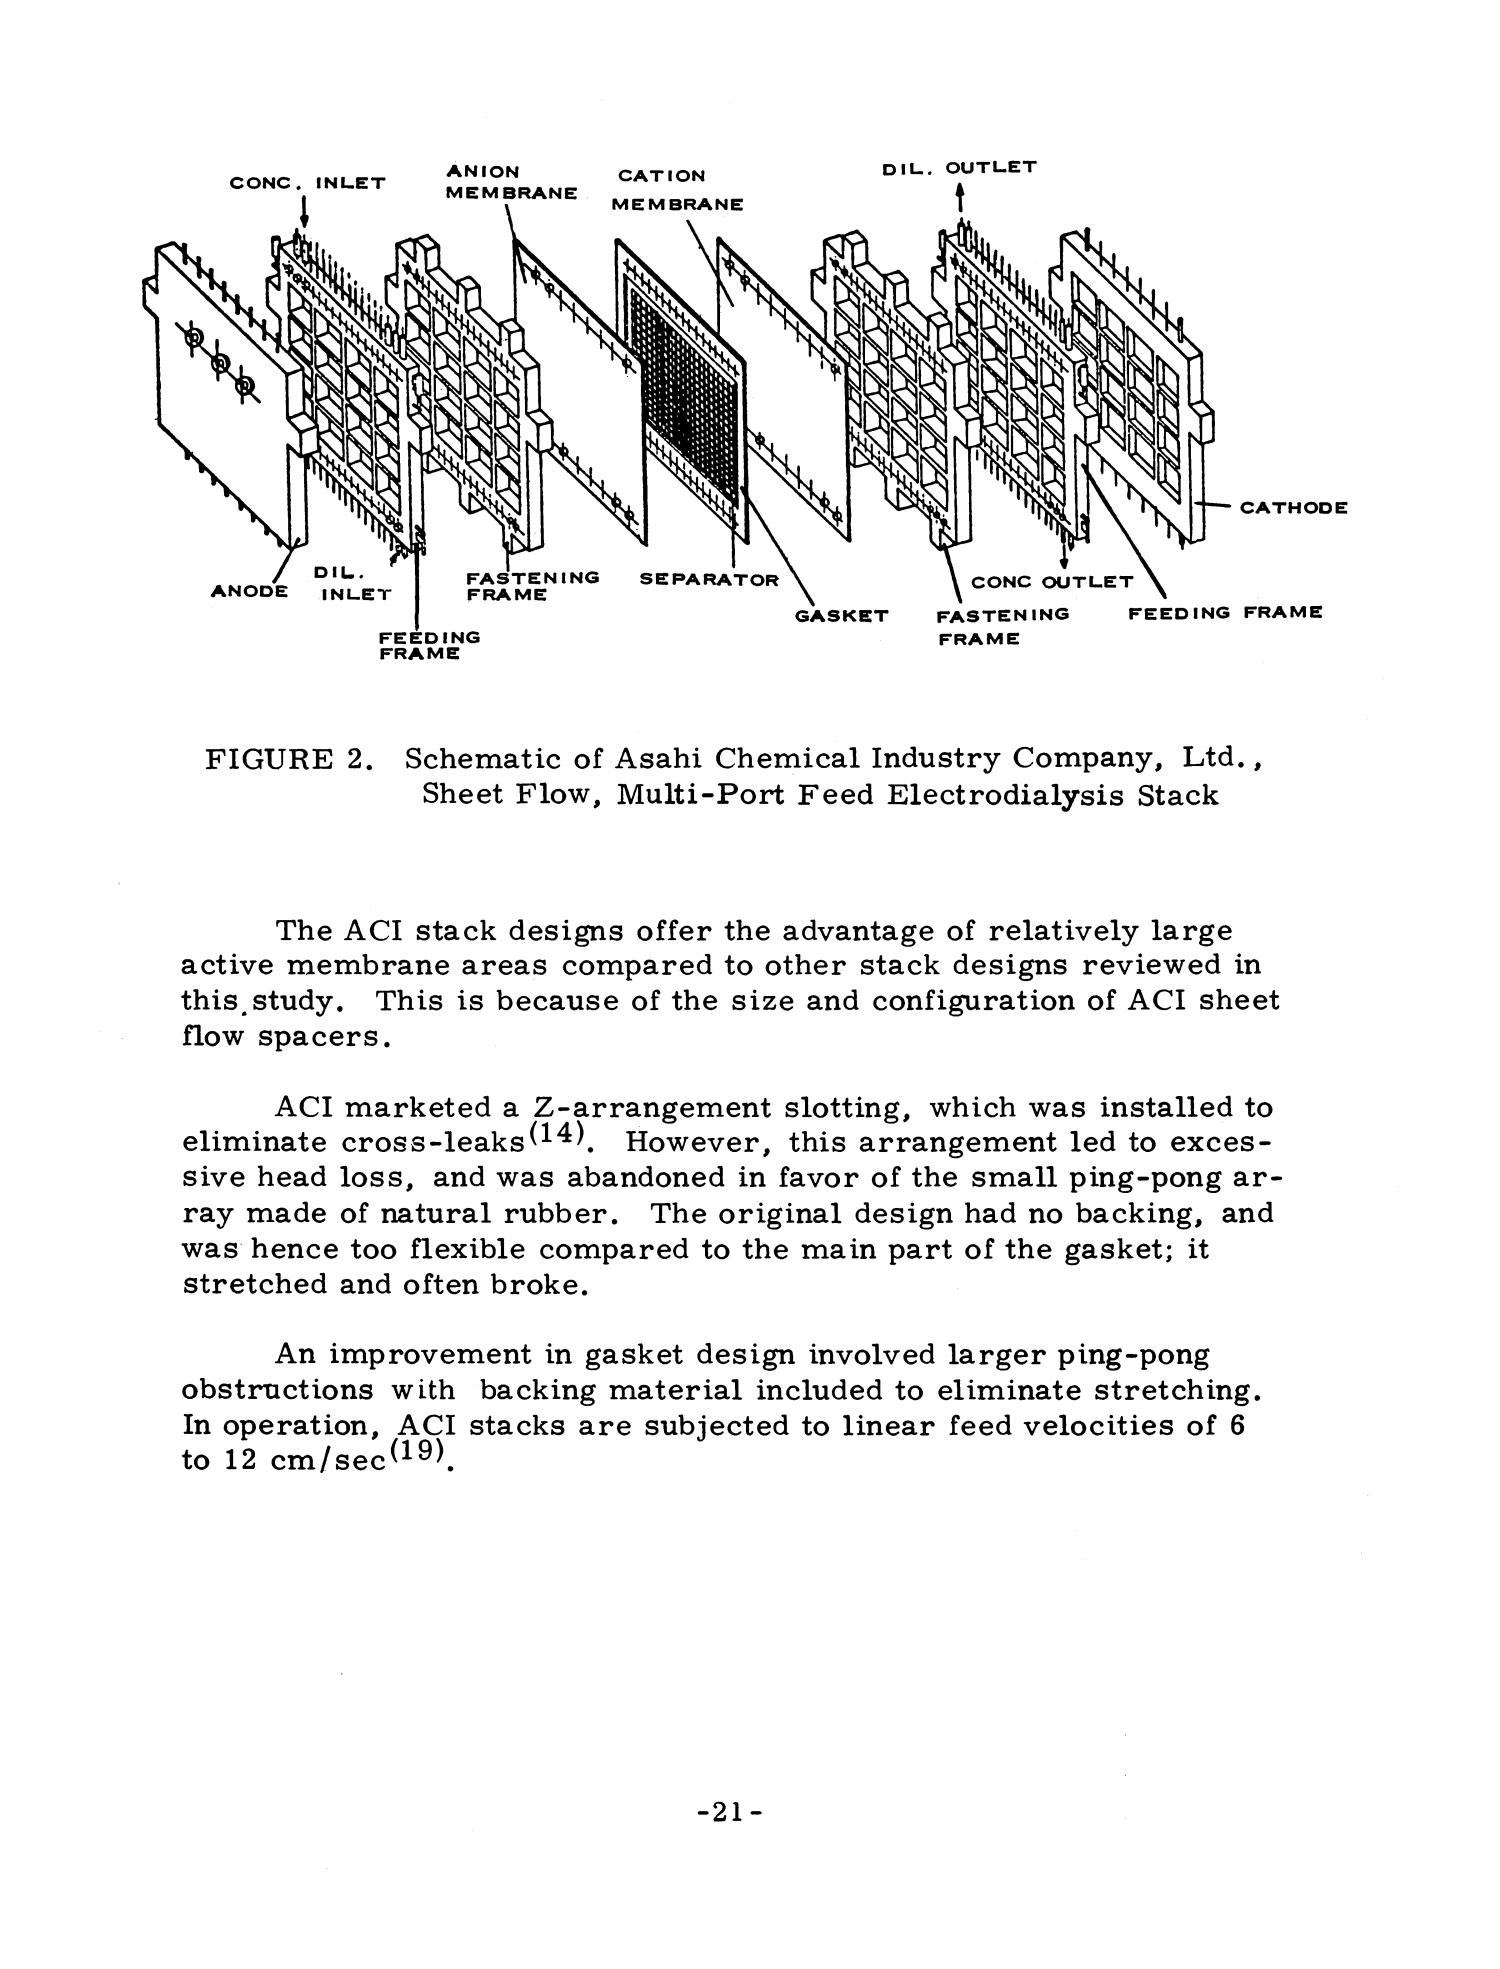 Parametric Economic and Engineering Evaluation Study of the